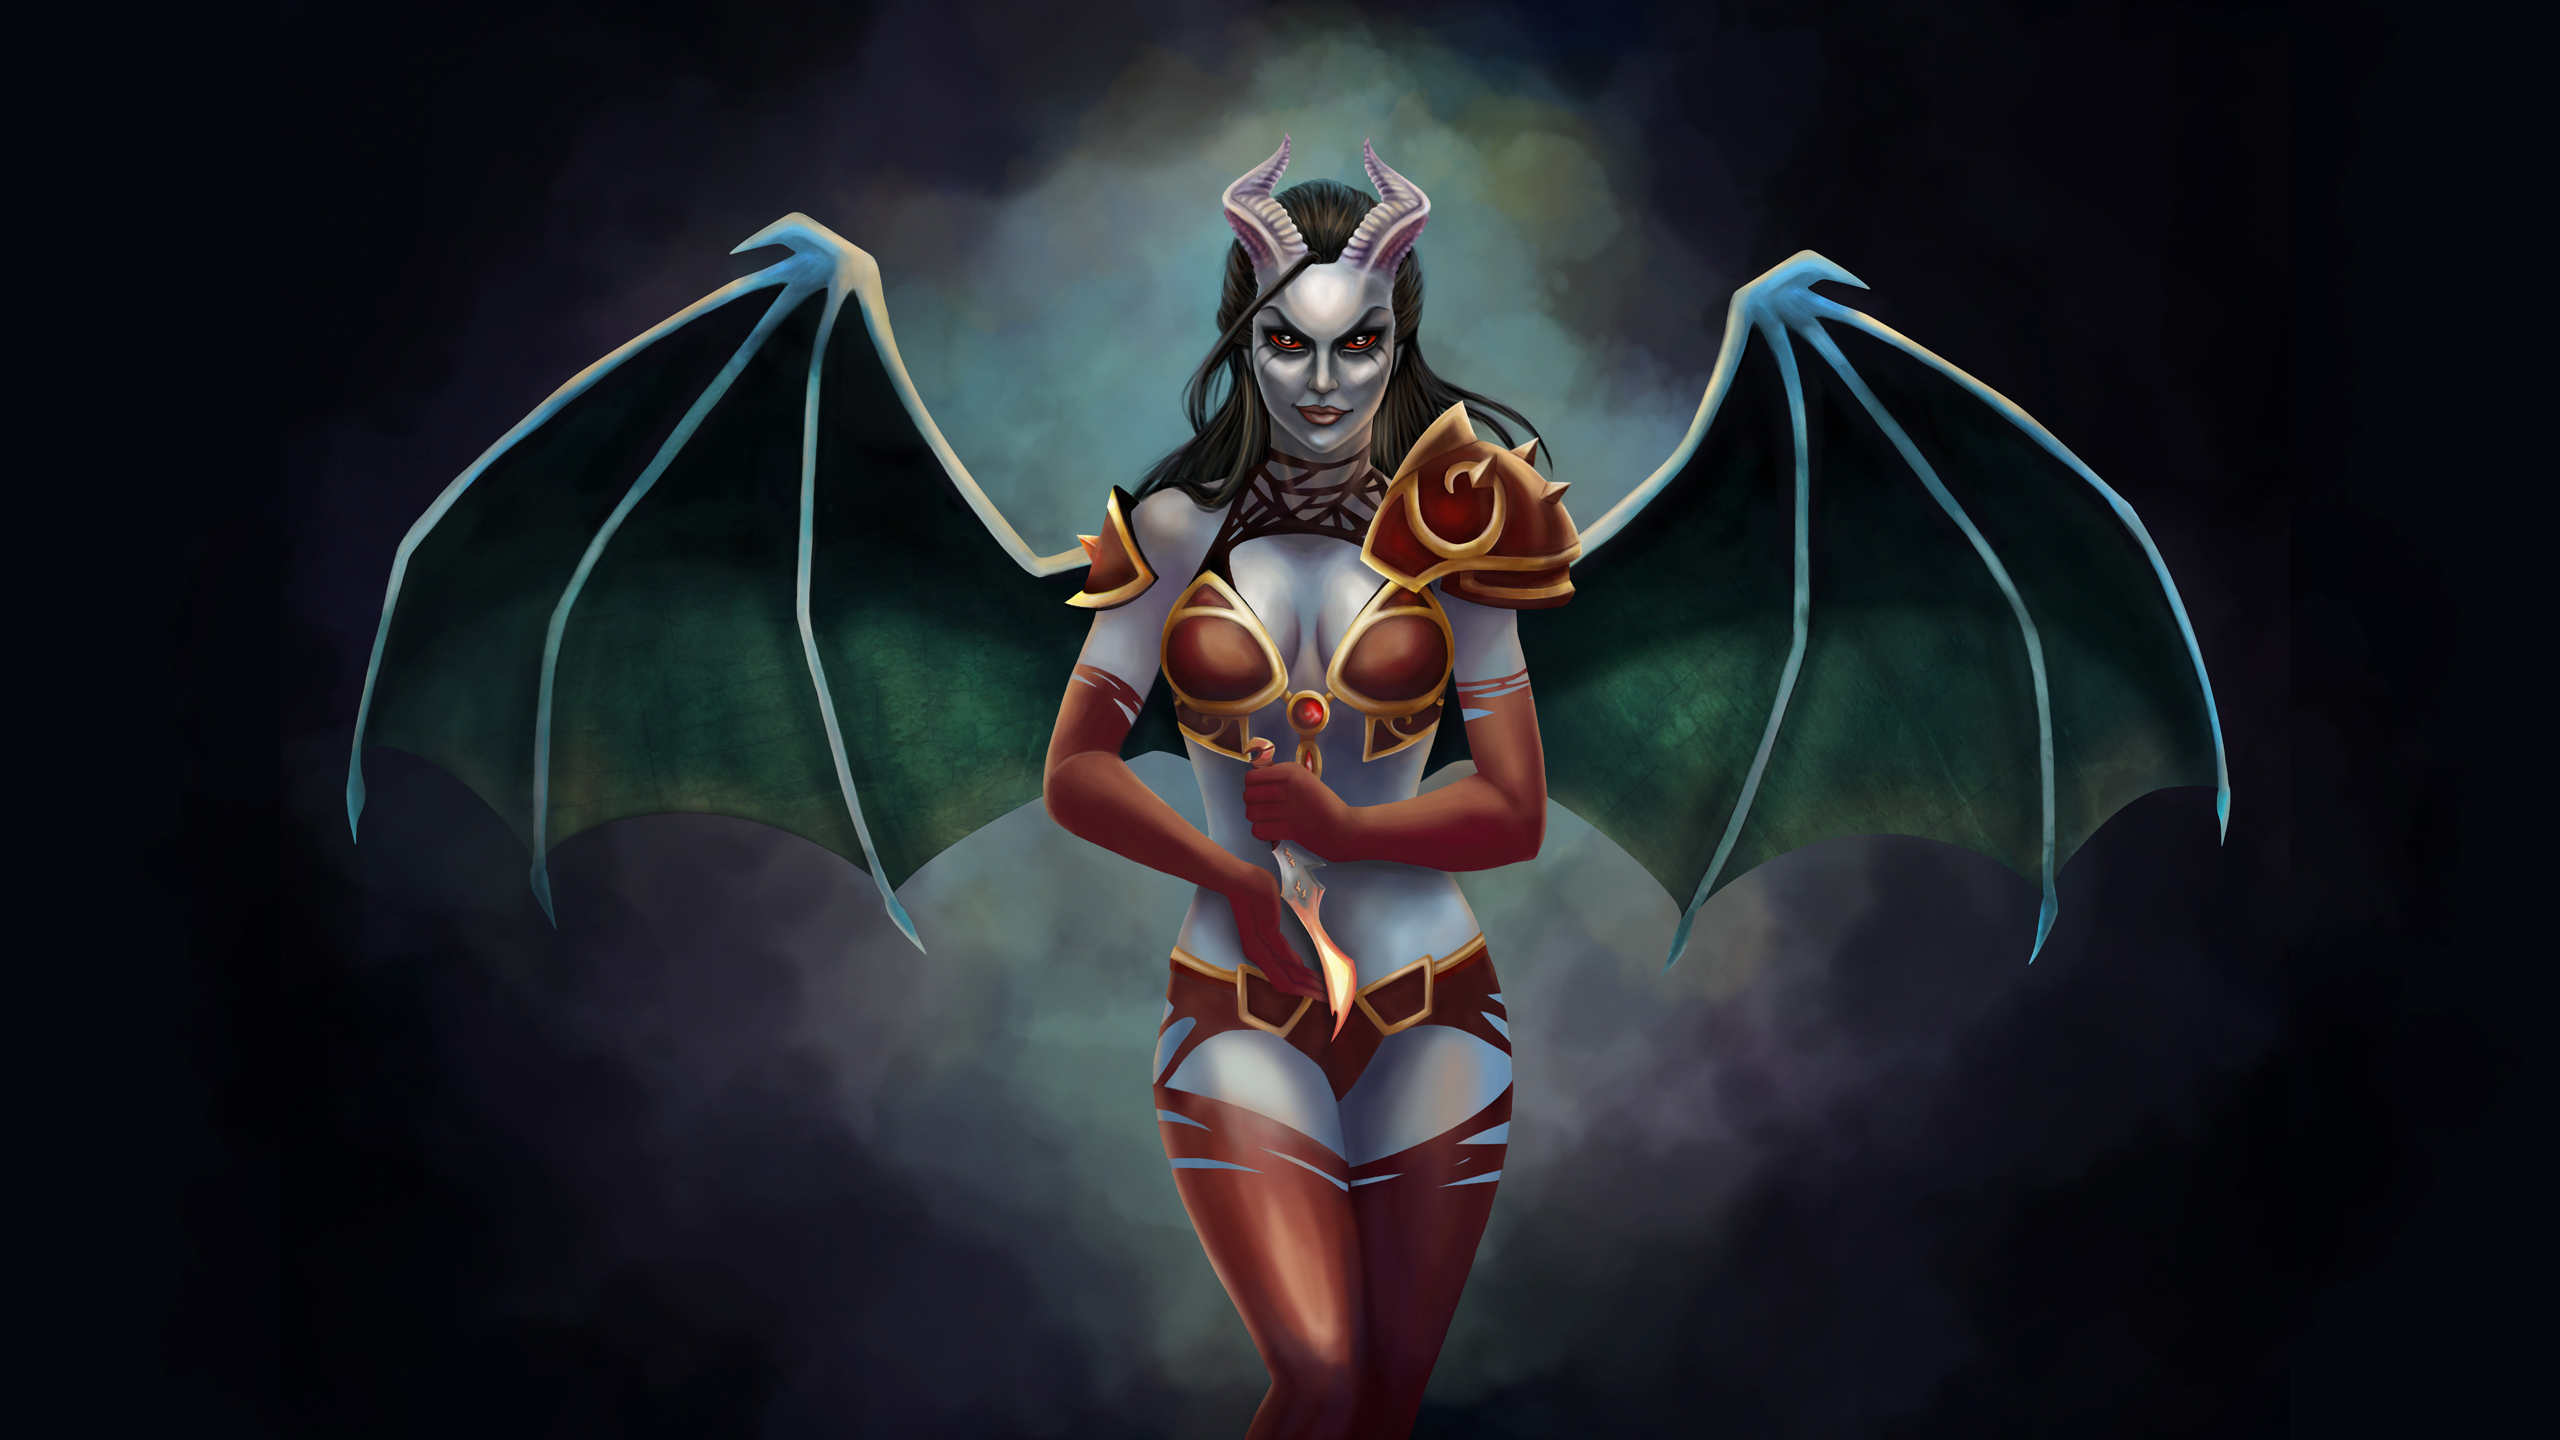 Dota 2 Queen Of Pain Hd Wallpaper Background Image